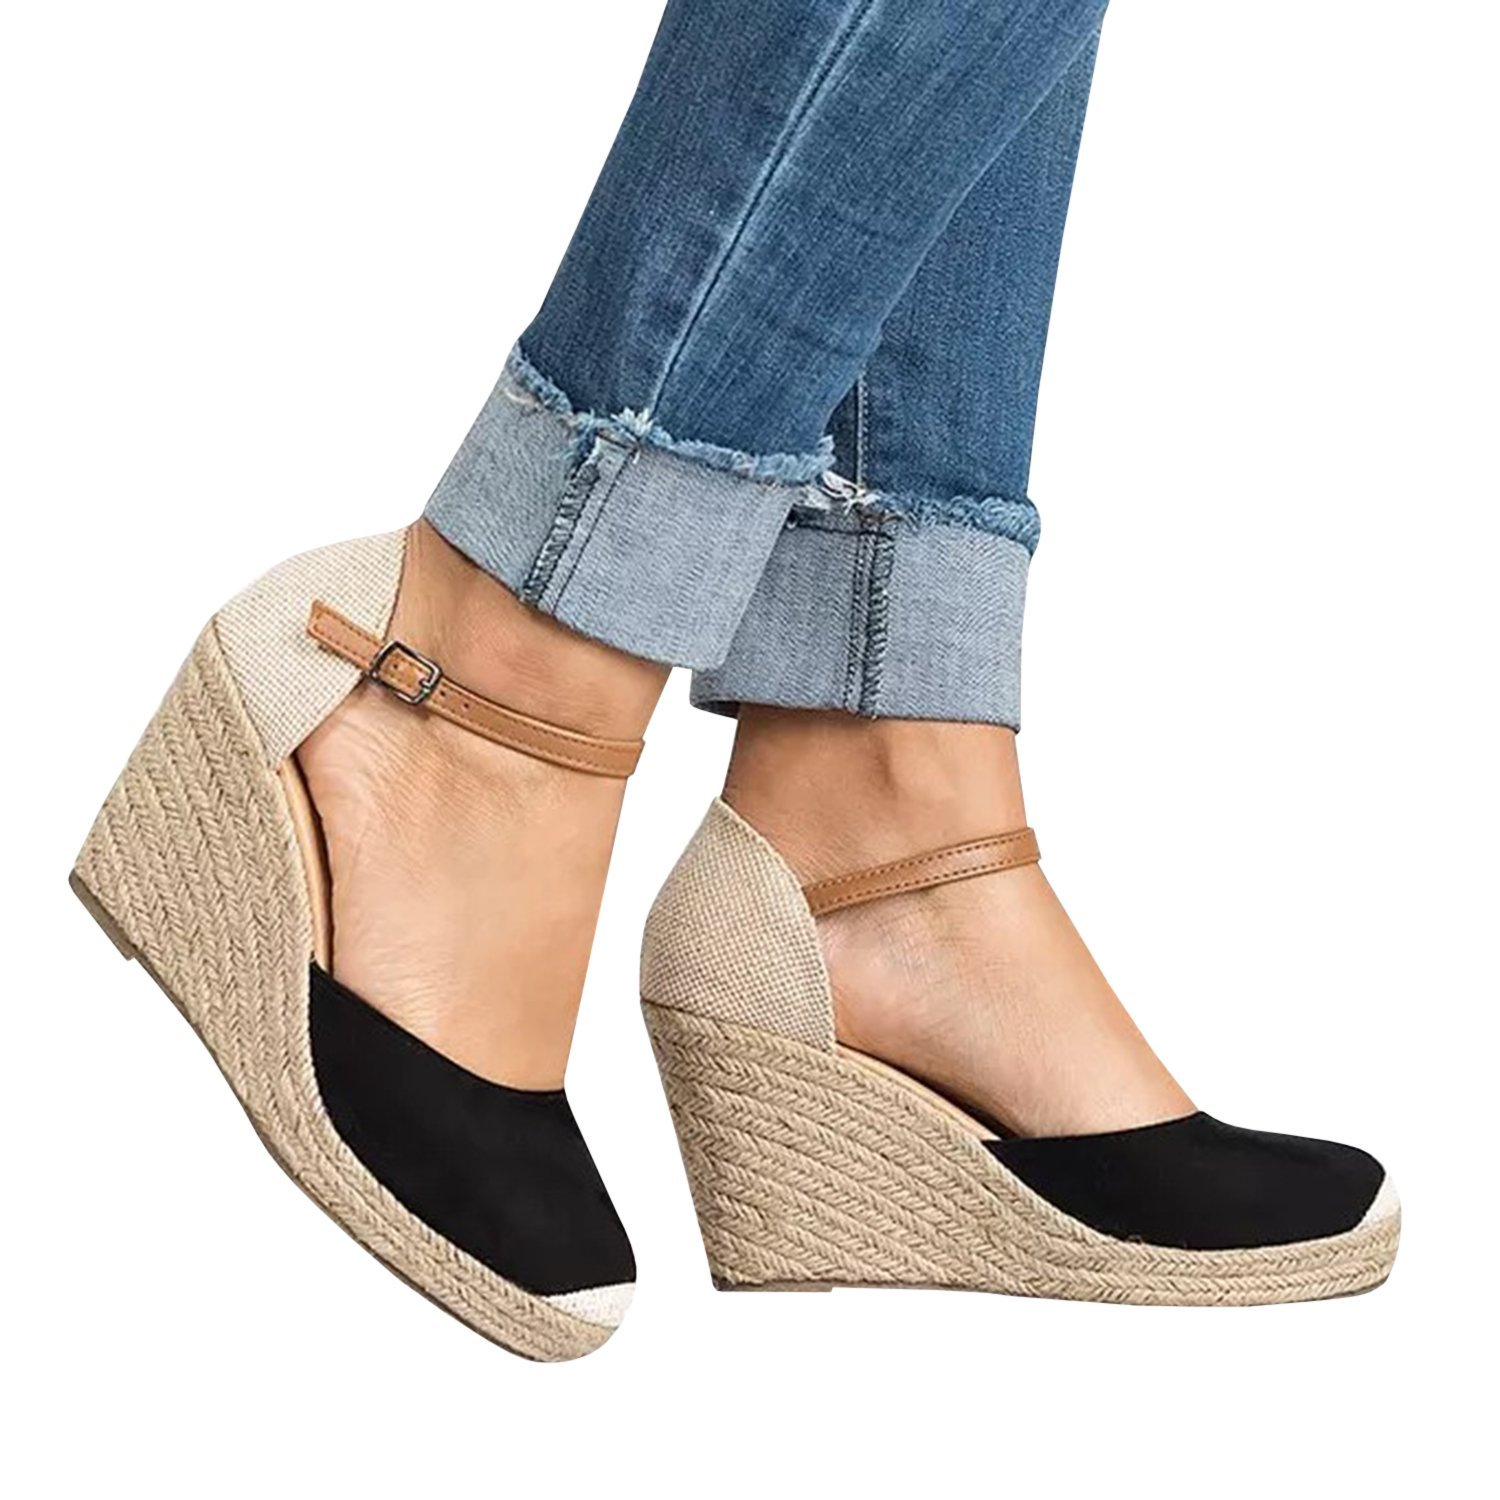 f220c1f4cf92 Fashare Womens Closed Toe Espadrilles Platform Heel Wedge Shoes Ankle Strap  Sandals